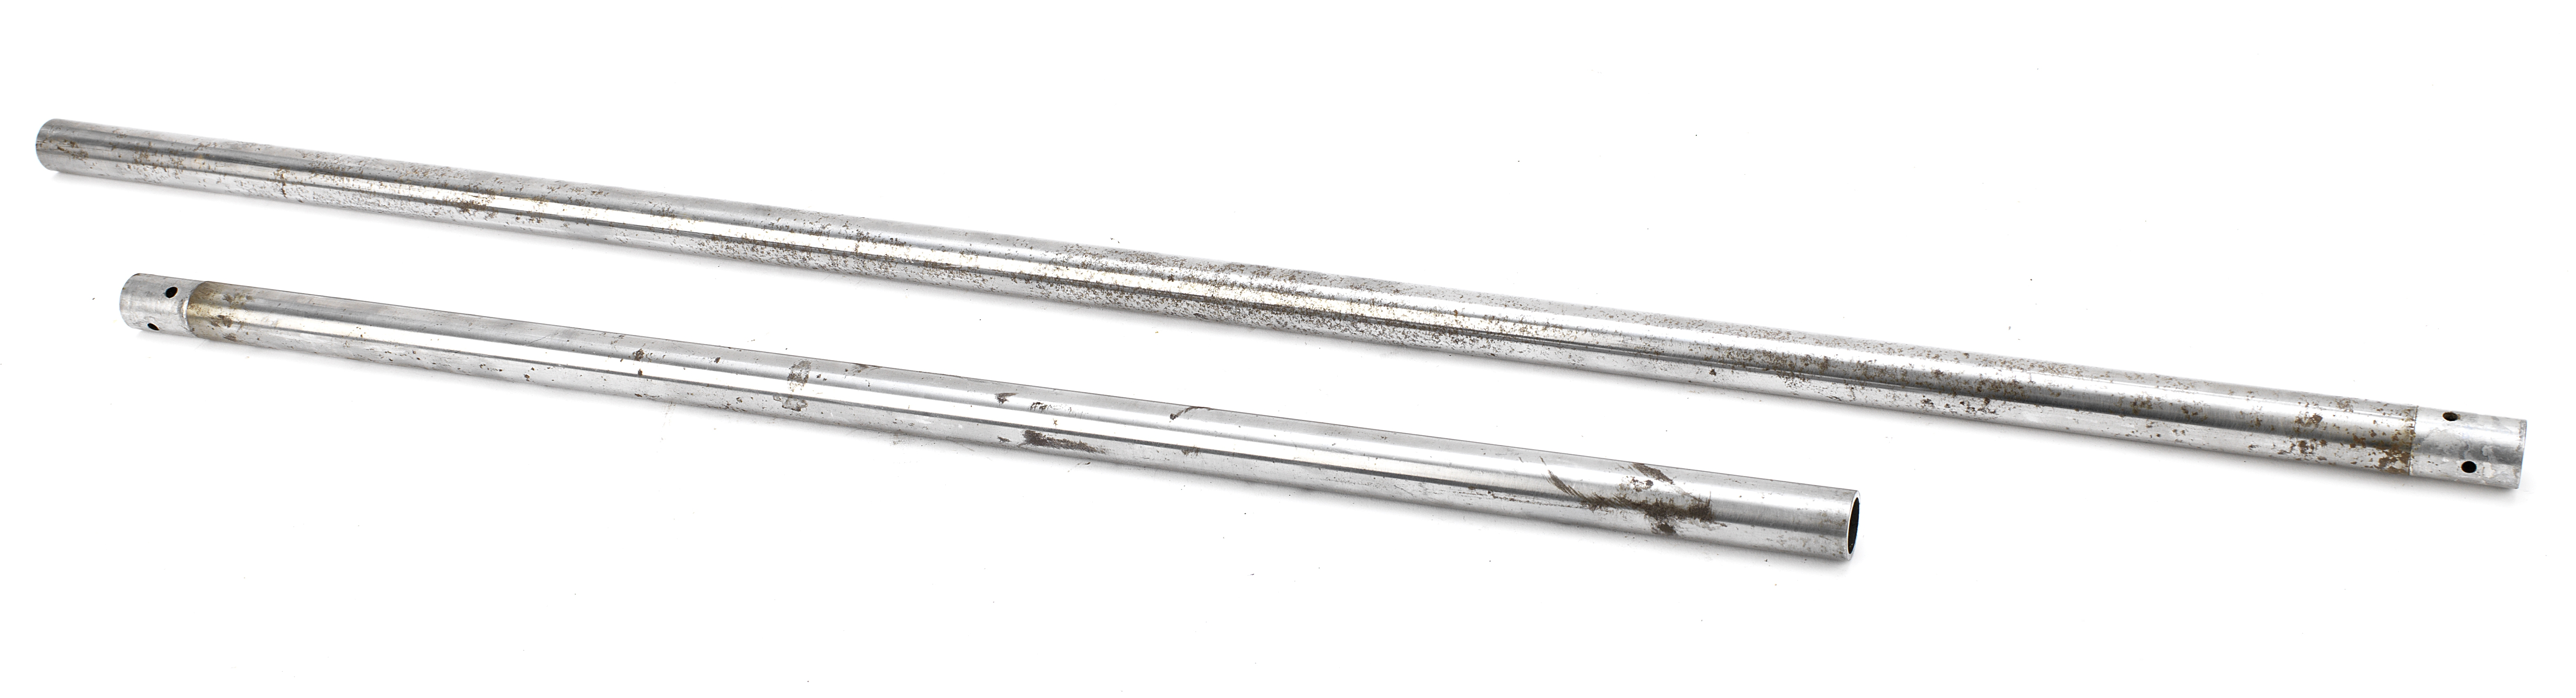 A track rod and drag link to suit Bugatti Type 57/57S, ((2))